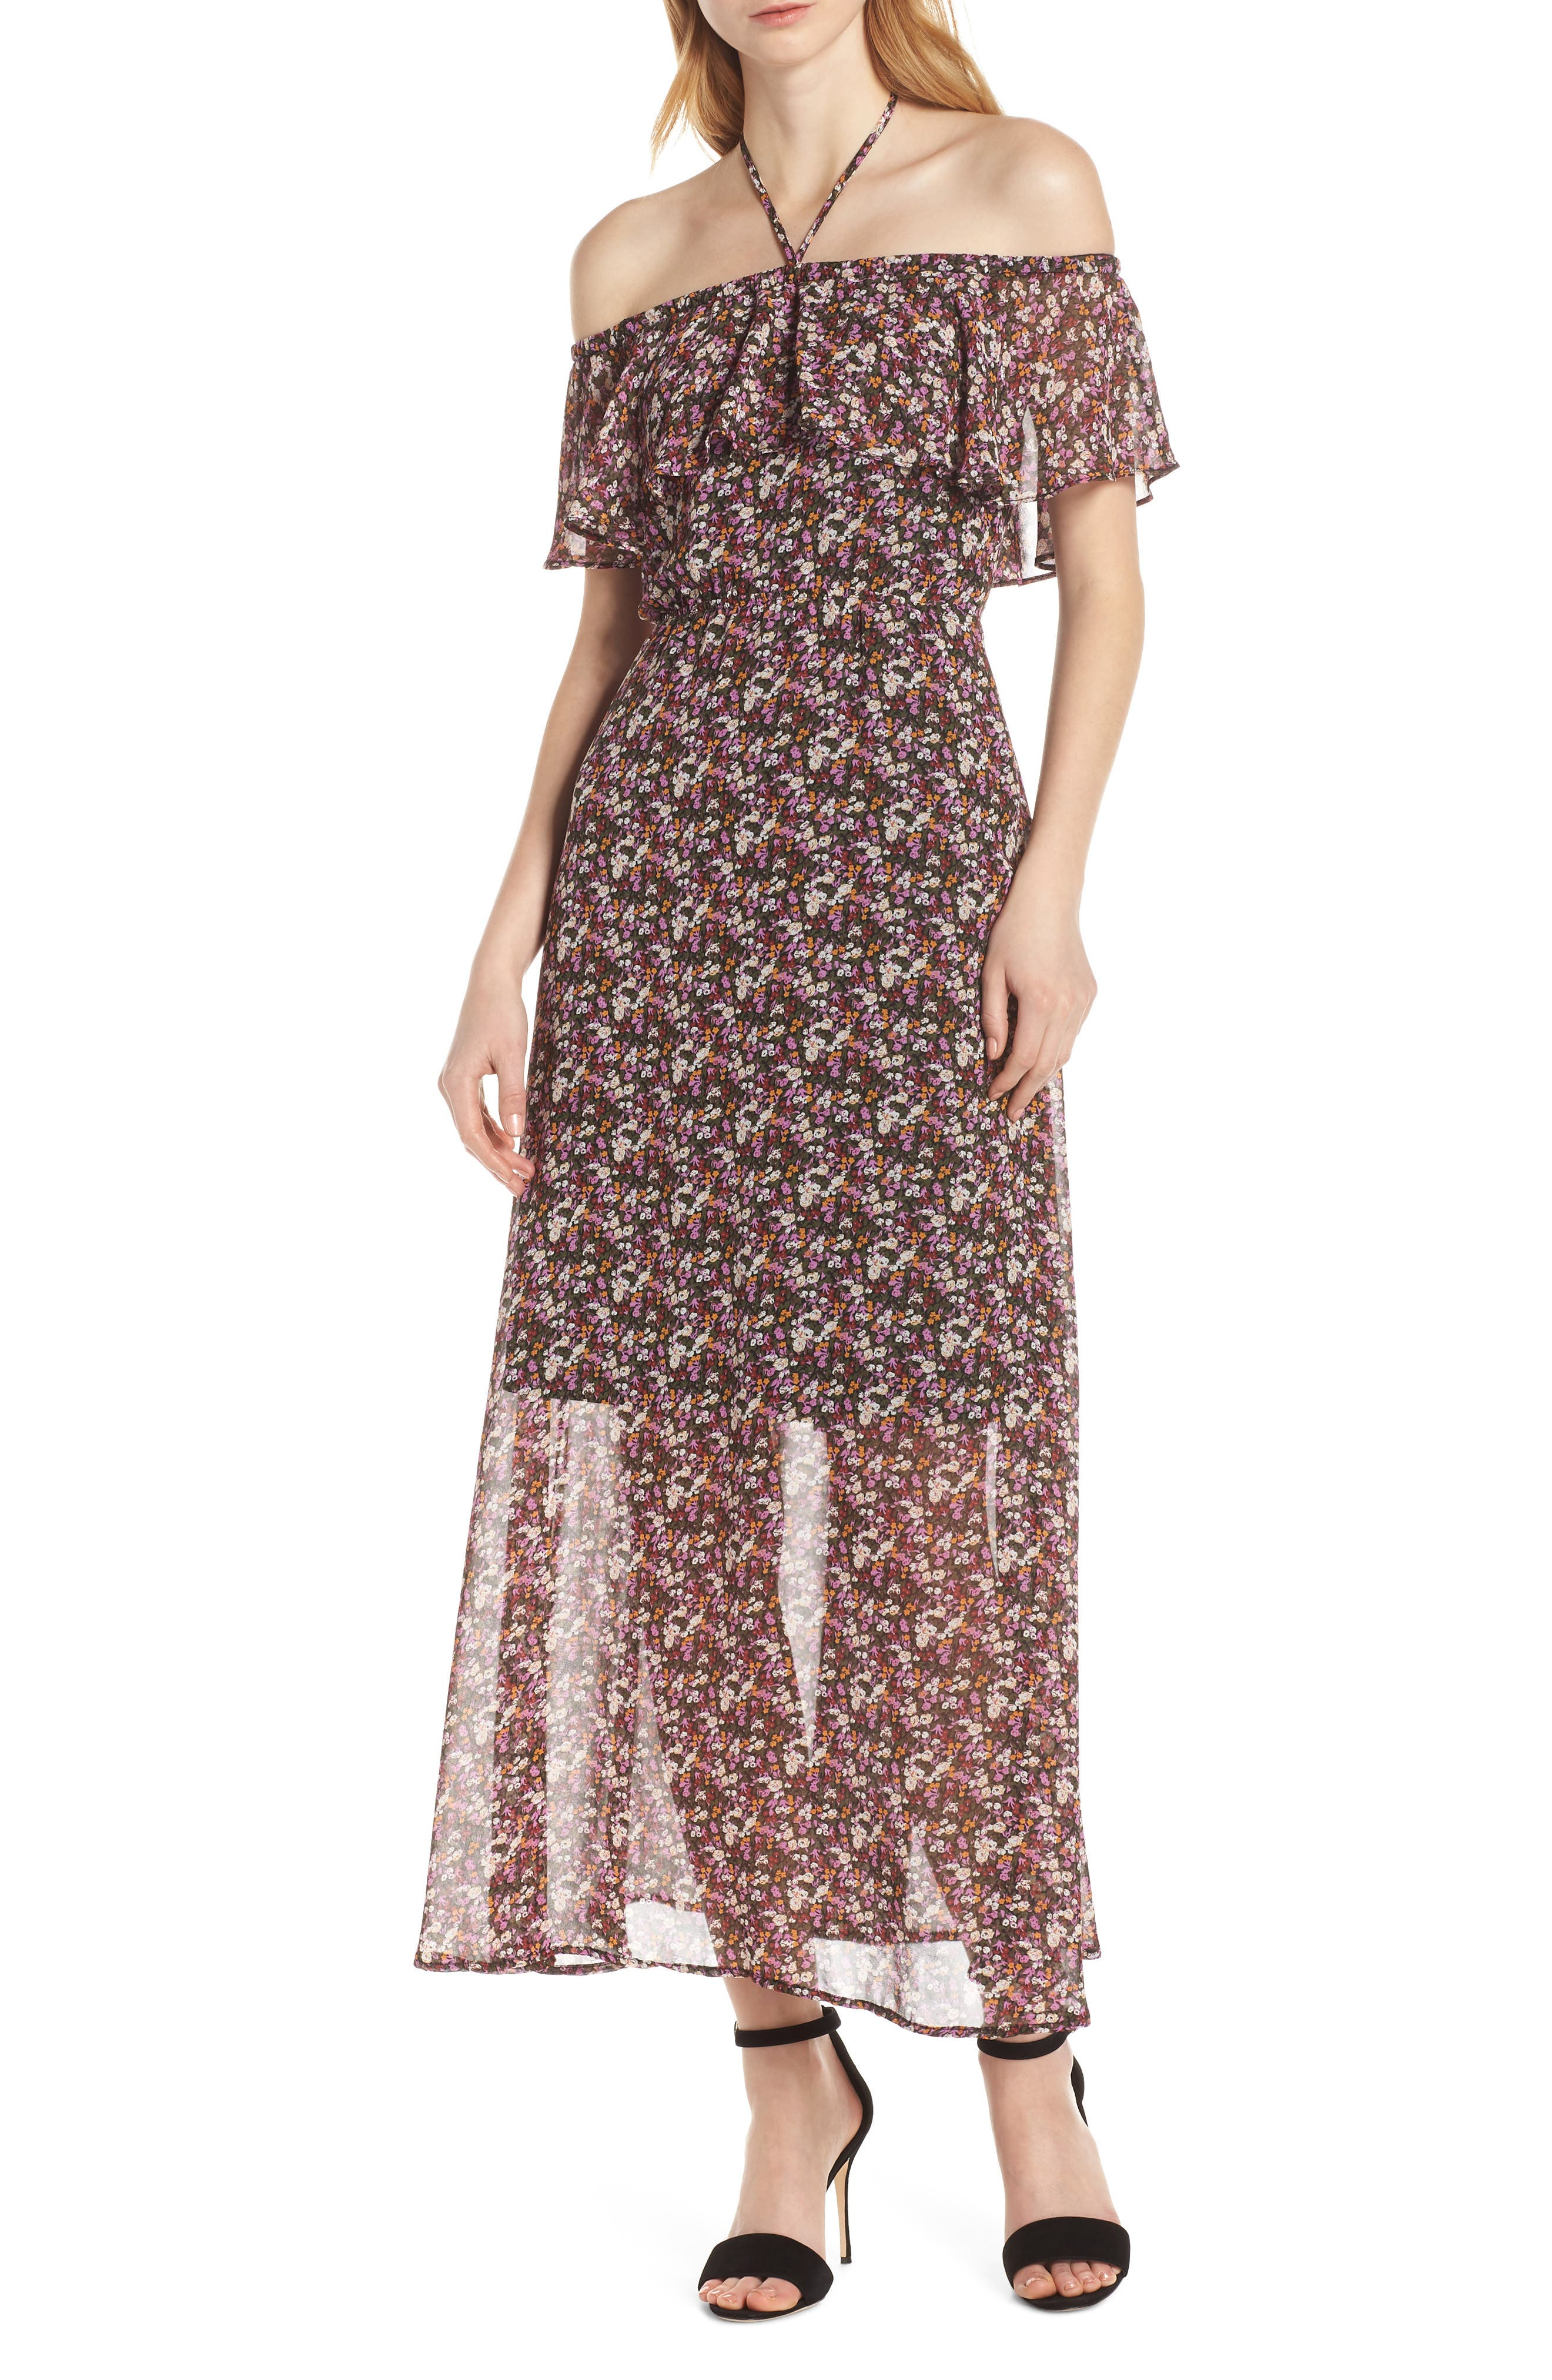 Sam Edelman Ditsy Floral Off The Shoulder Chiffon Maxi Dress, Pink